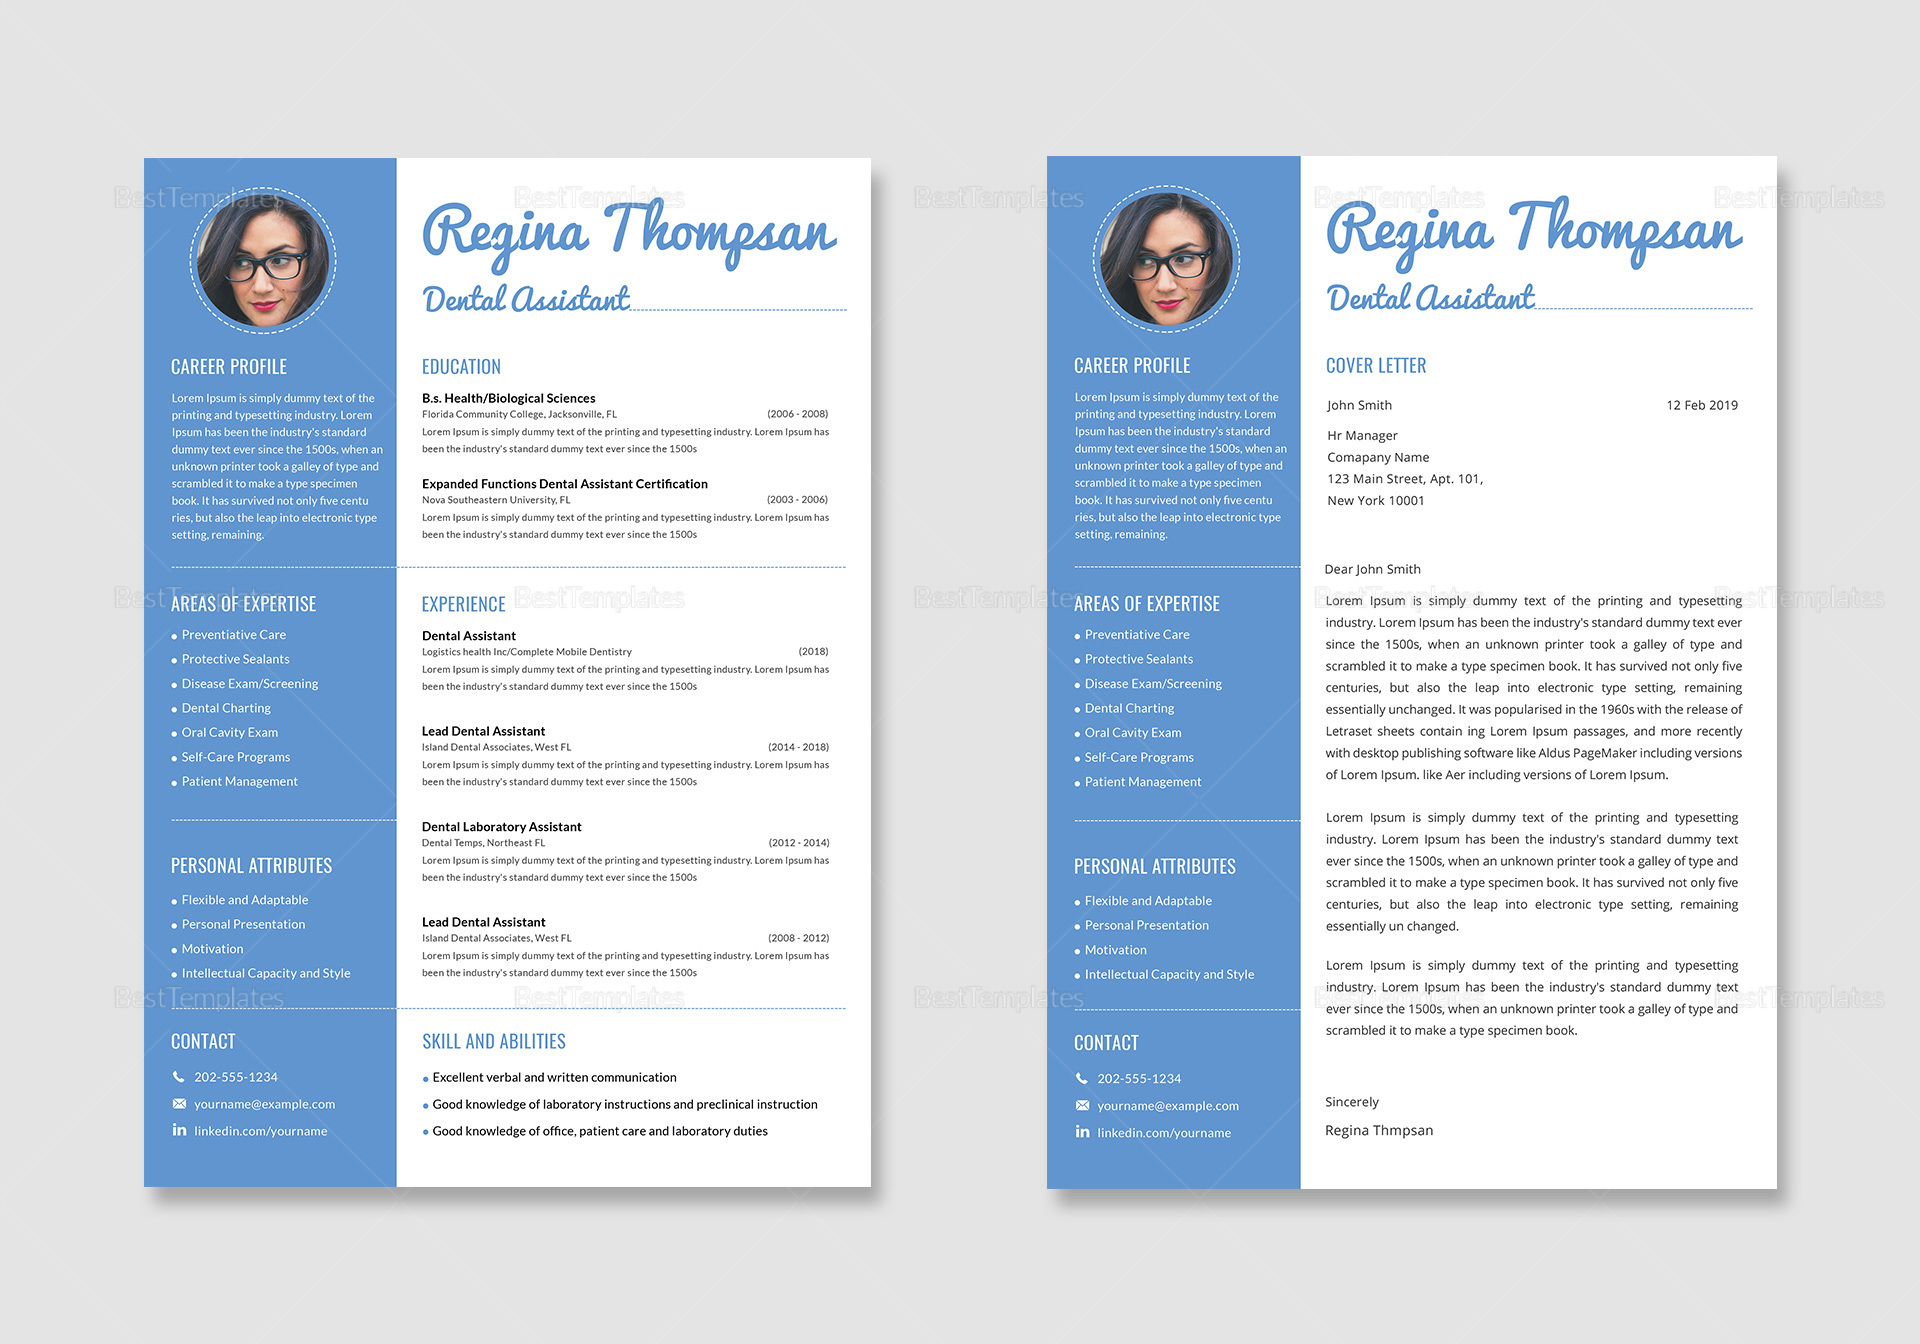 Dental Assistant Resume and Cover Letter